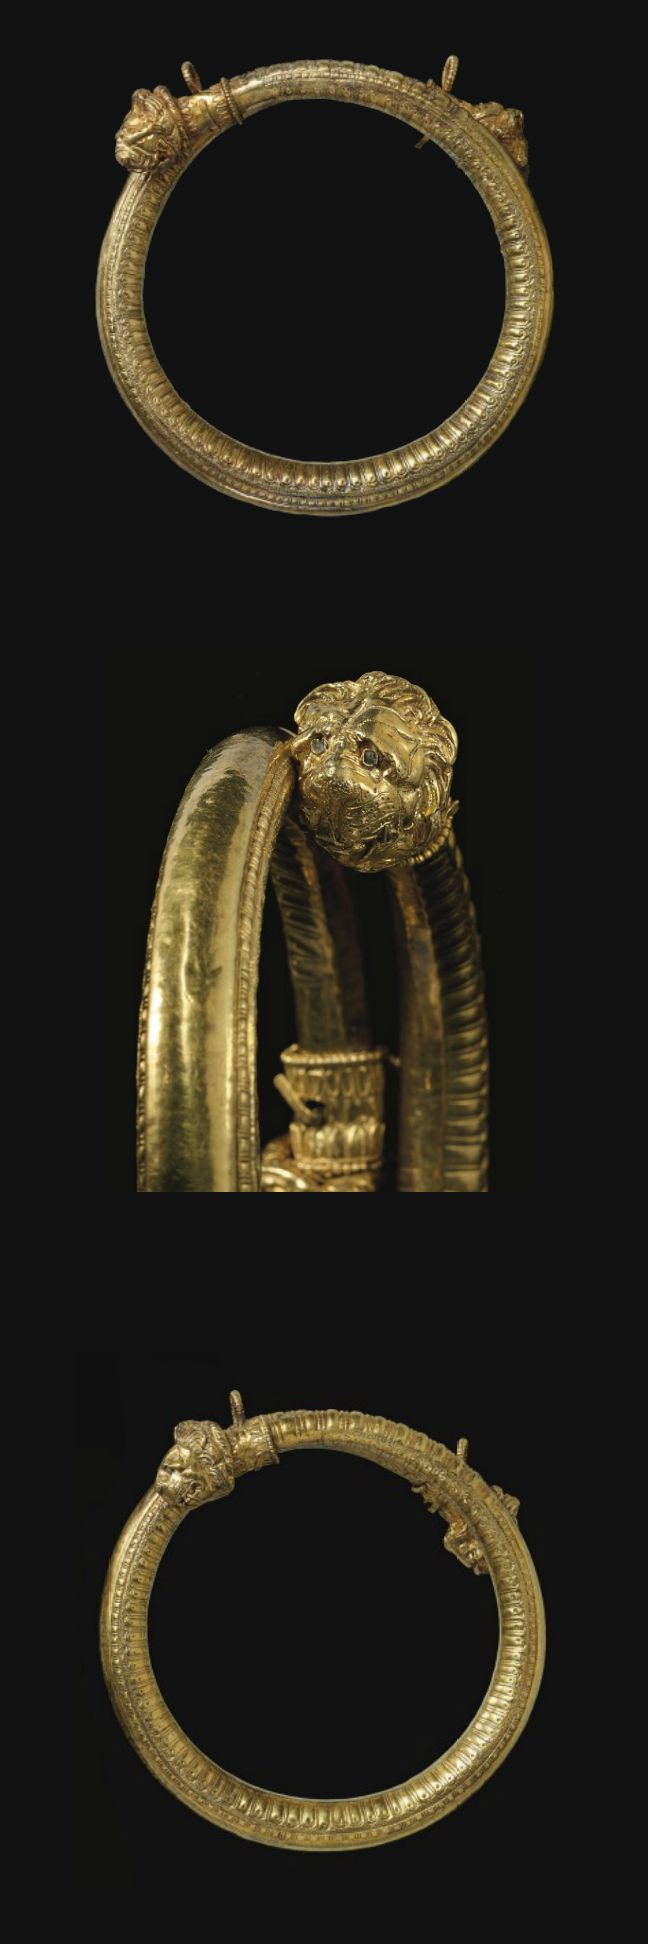 A PAIR OF GREEK GOLD BRACELETS   HELLENISTIC PERIOD, CIRCA LATE 4TH-EARLY 3RD CENTURY B.C.